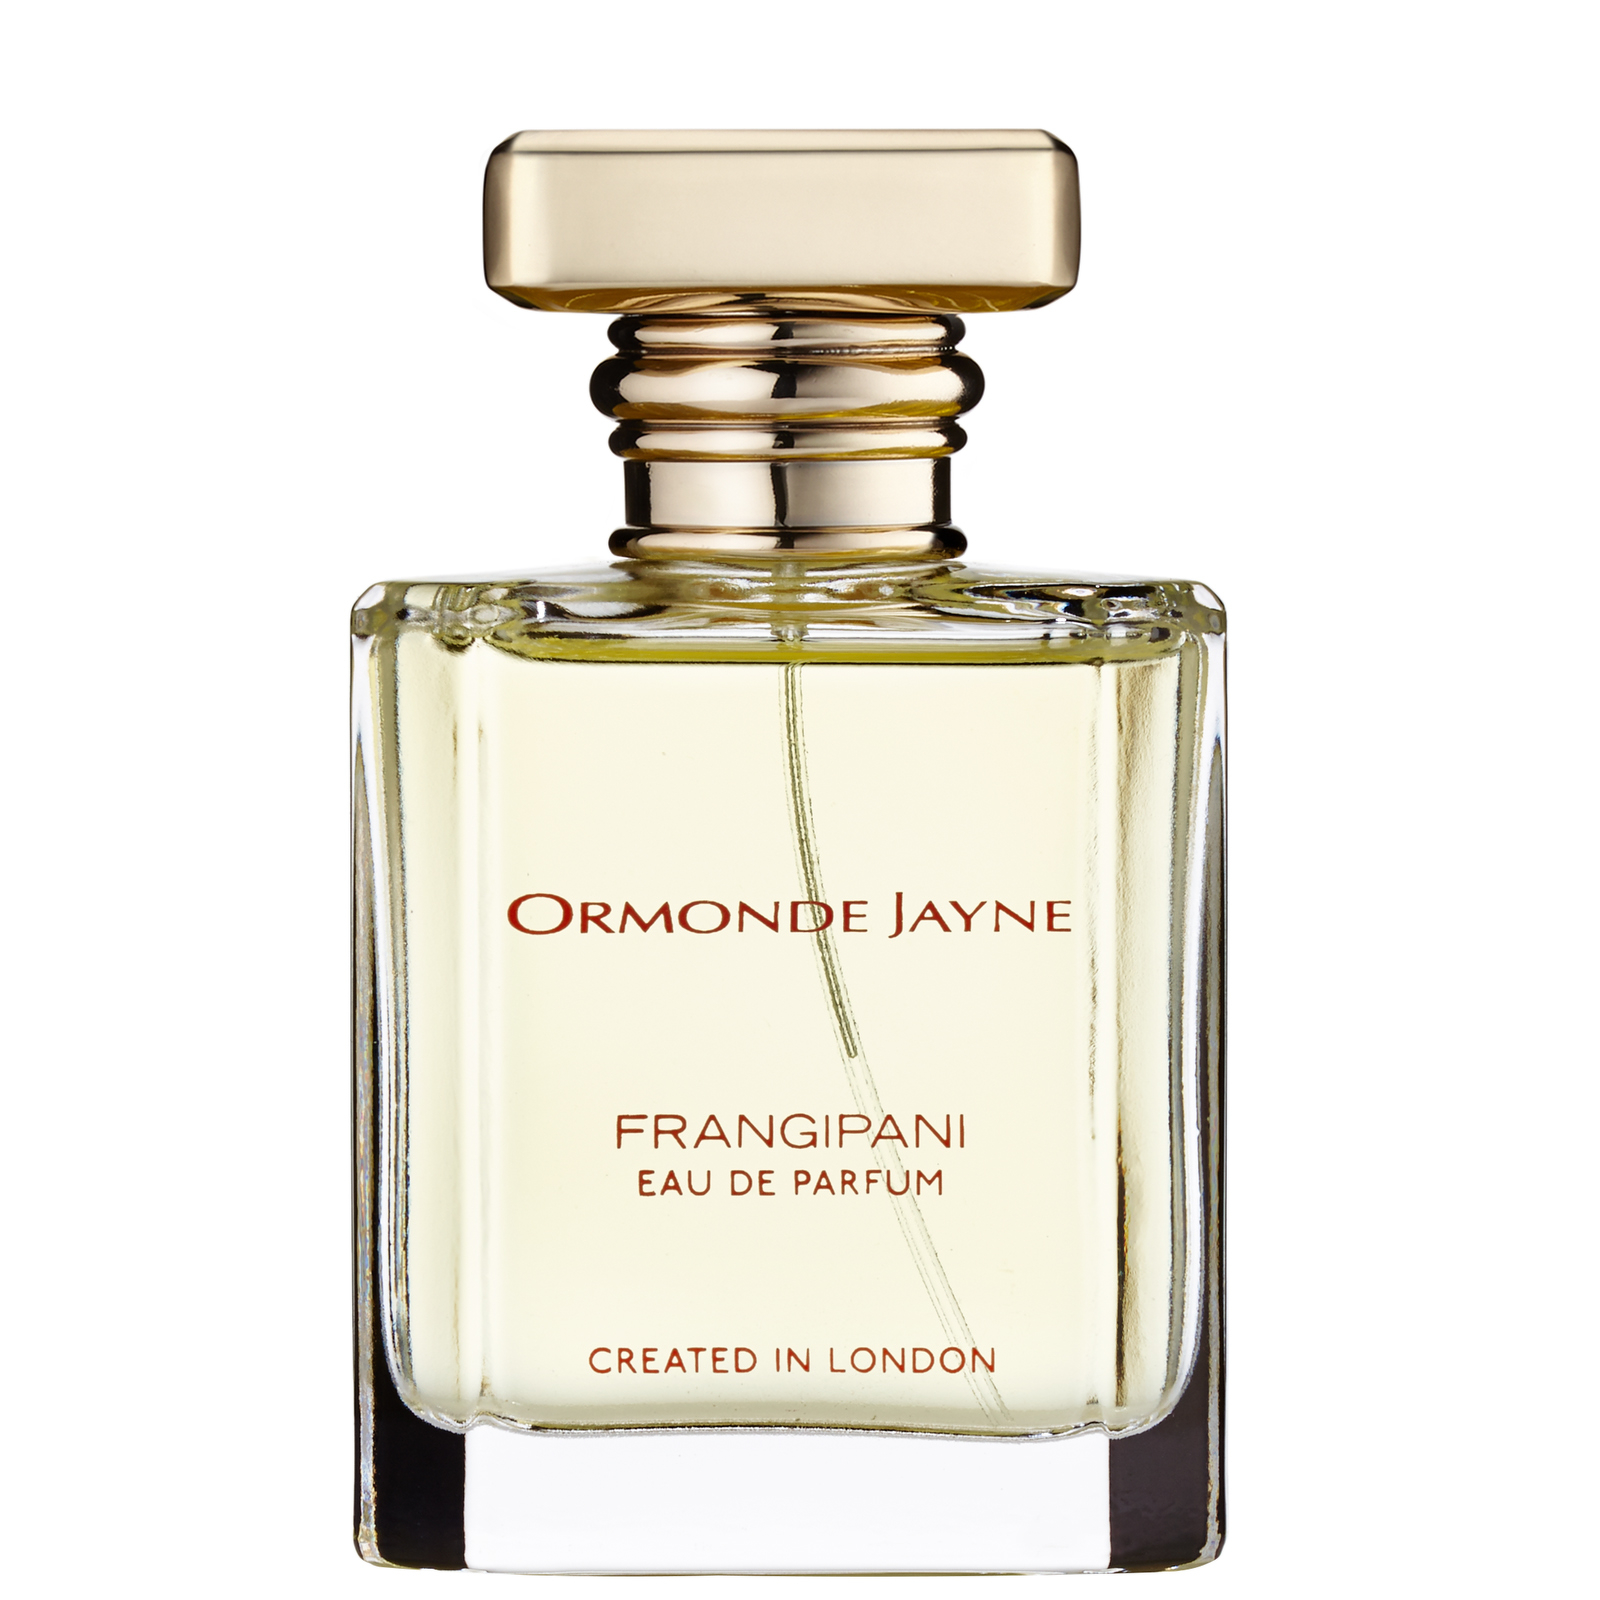 Ormonde Jayne Frangipani Eau de Parfum Spray 50ml